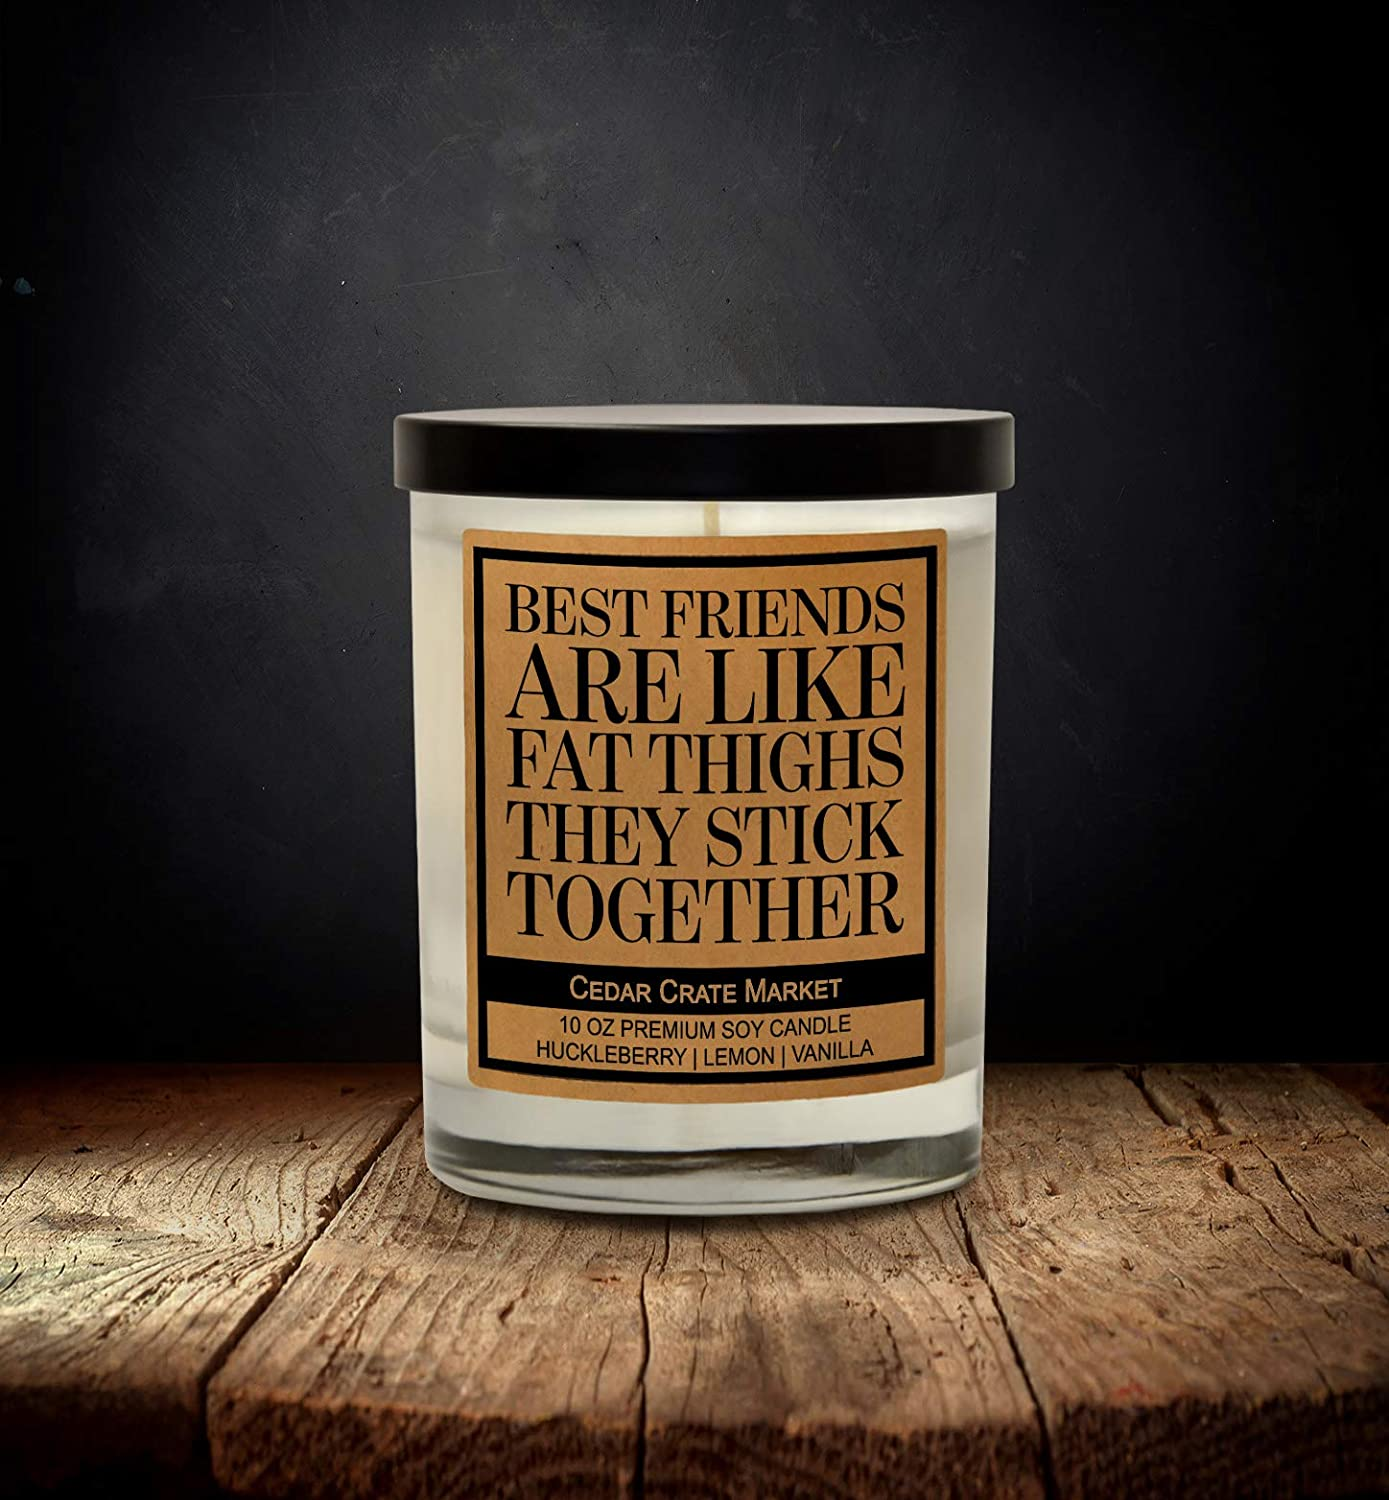 Thick Thighs Besties Personalized Candle Holder With Heart valentine gift ideas personalized gifts